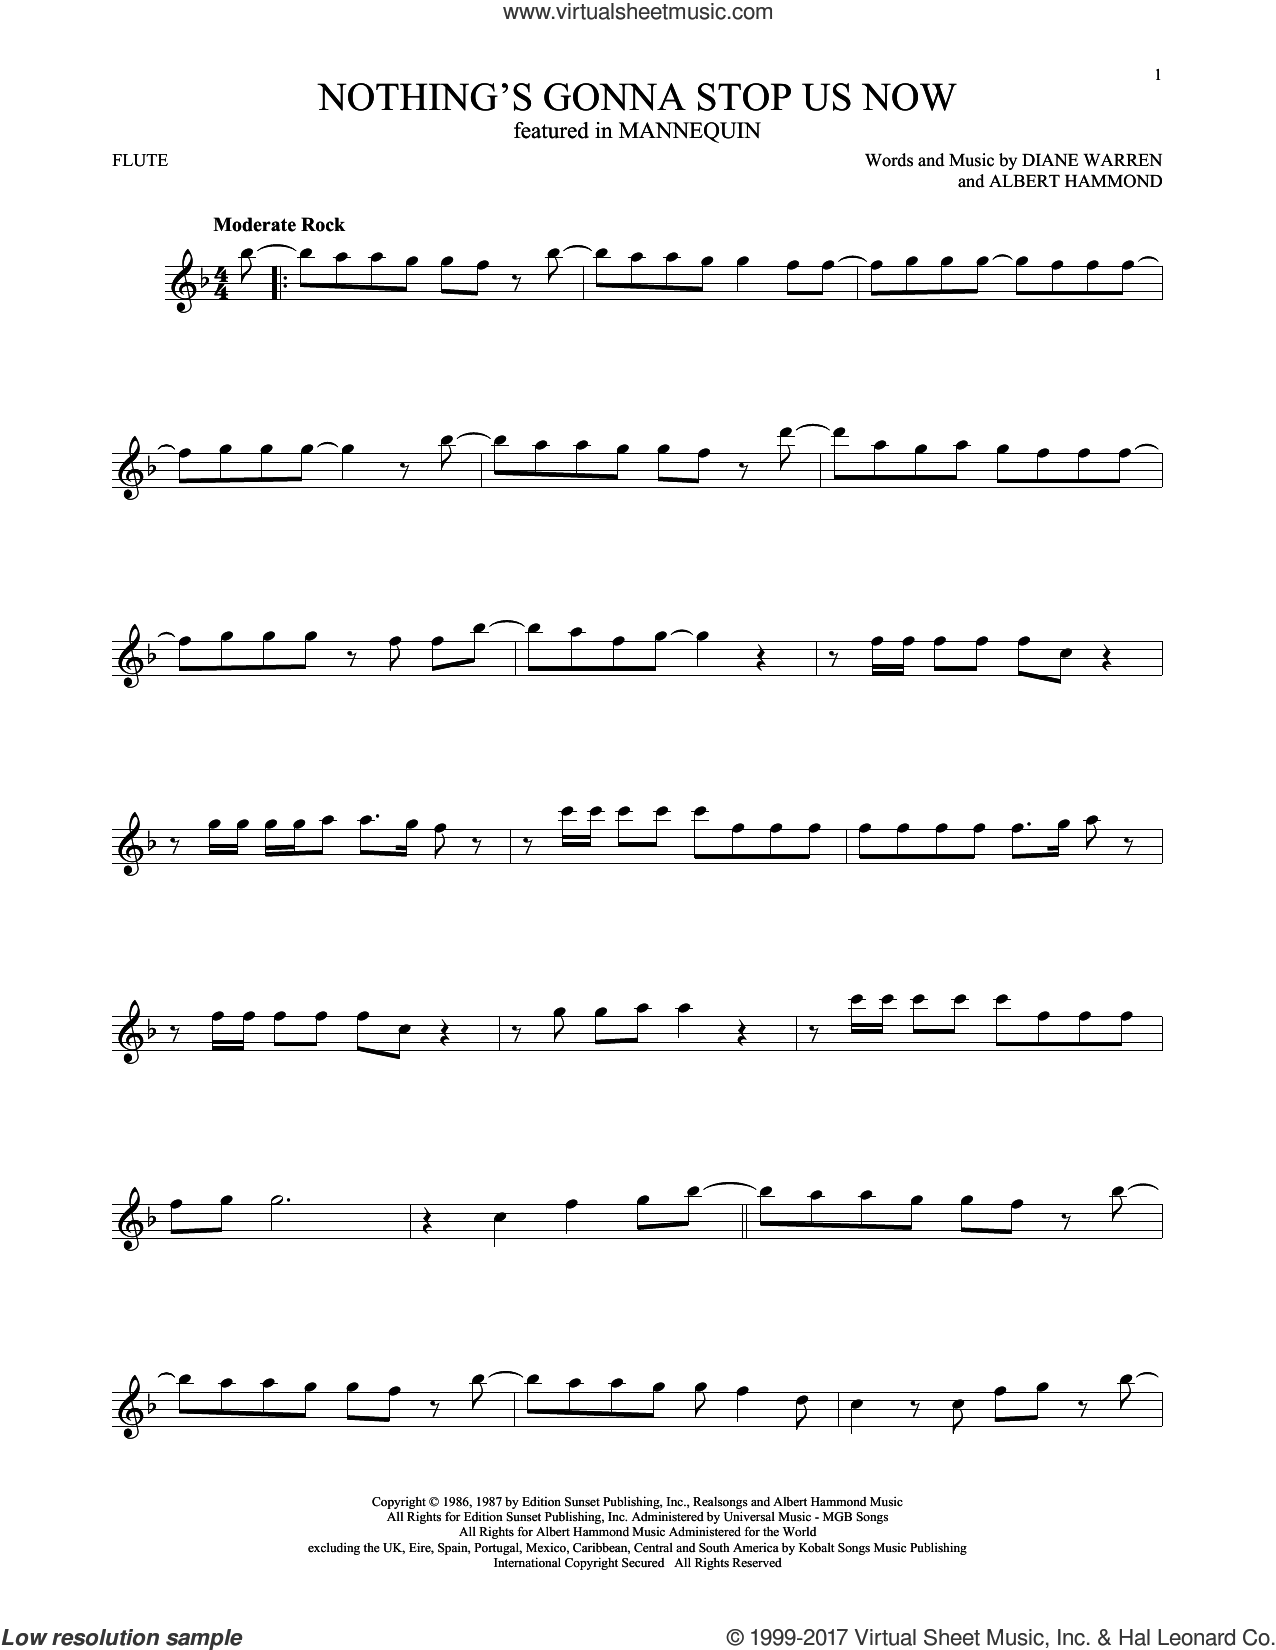 Nothing's Gonna Stop Us Now sheet music for flute solo by Starship, Albert Hammond and Diane Warren, wedding score, intermediate skill level